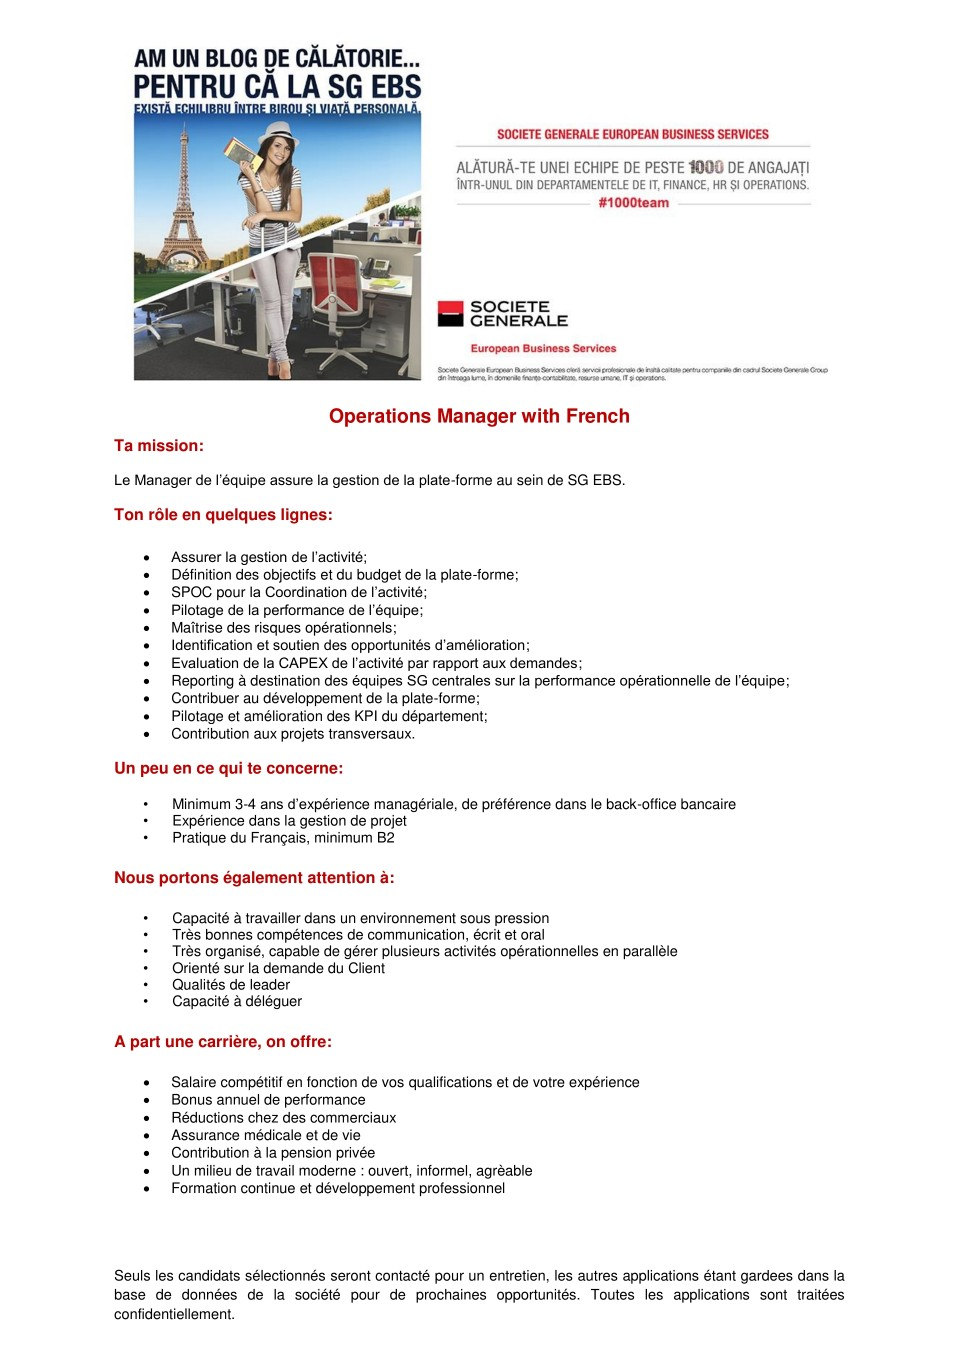 Societe Generale European Business Services delivers added value services for Societe Generale Group, starting with finance, accounting and human resources support for branches and subsidiaries located all around Europe.